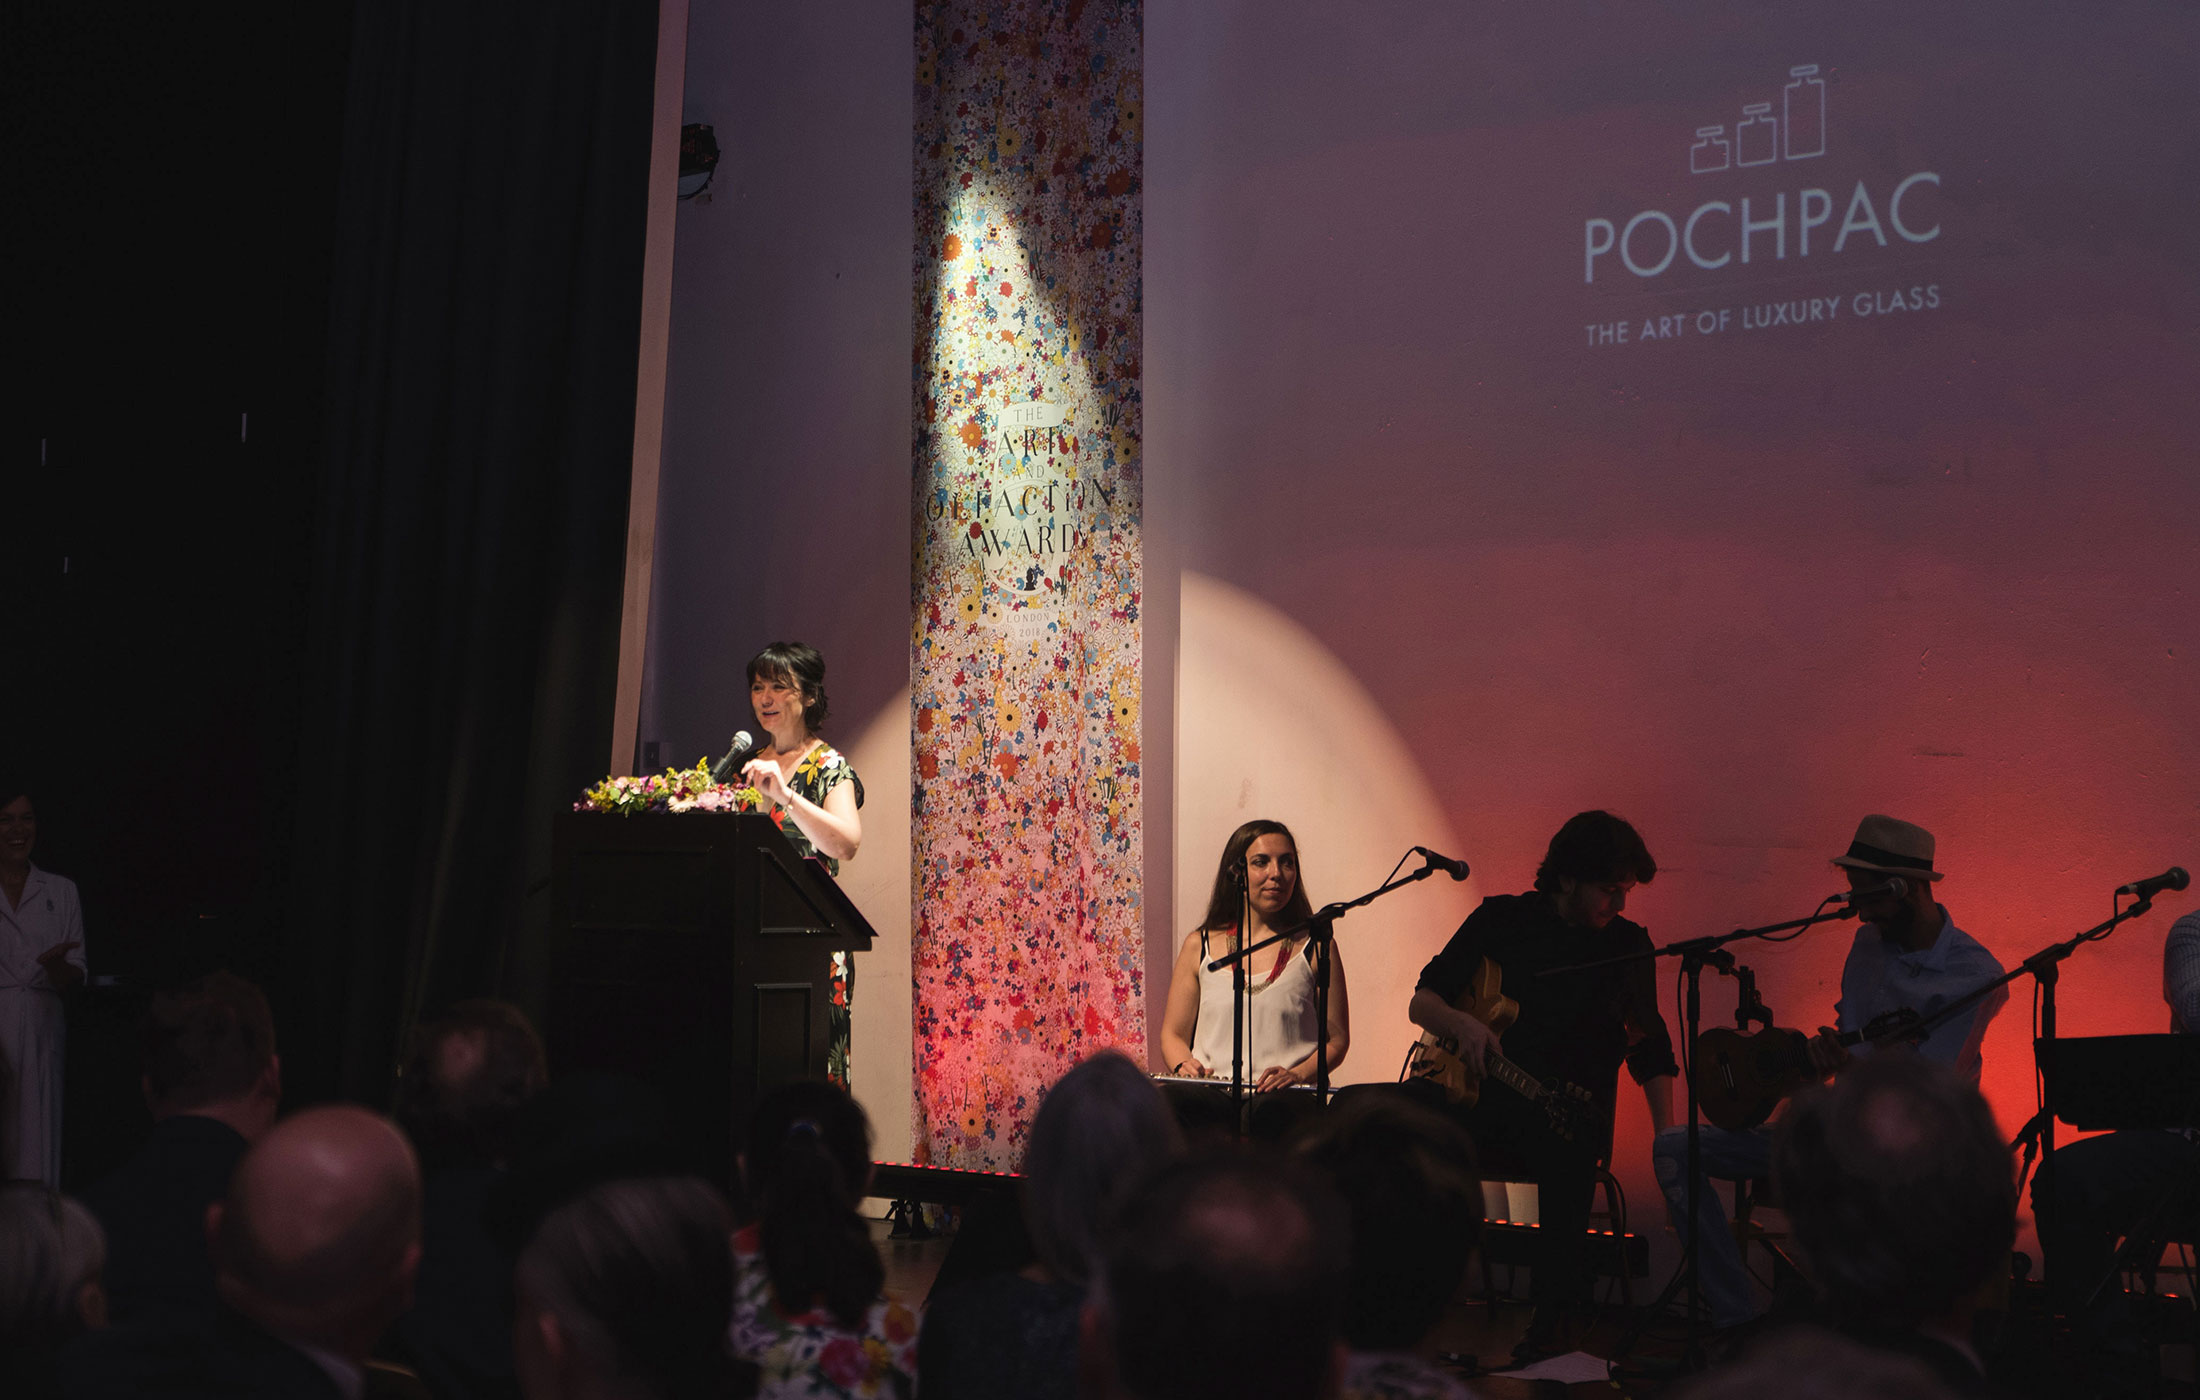 Pochpac at The Art and Olfaction Awards, Photo by Marina Chichi